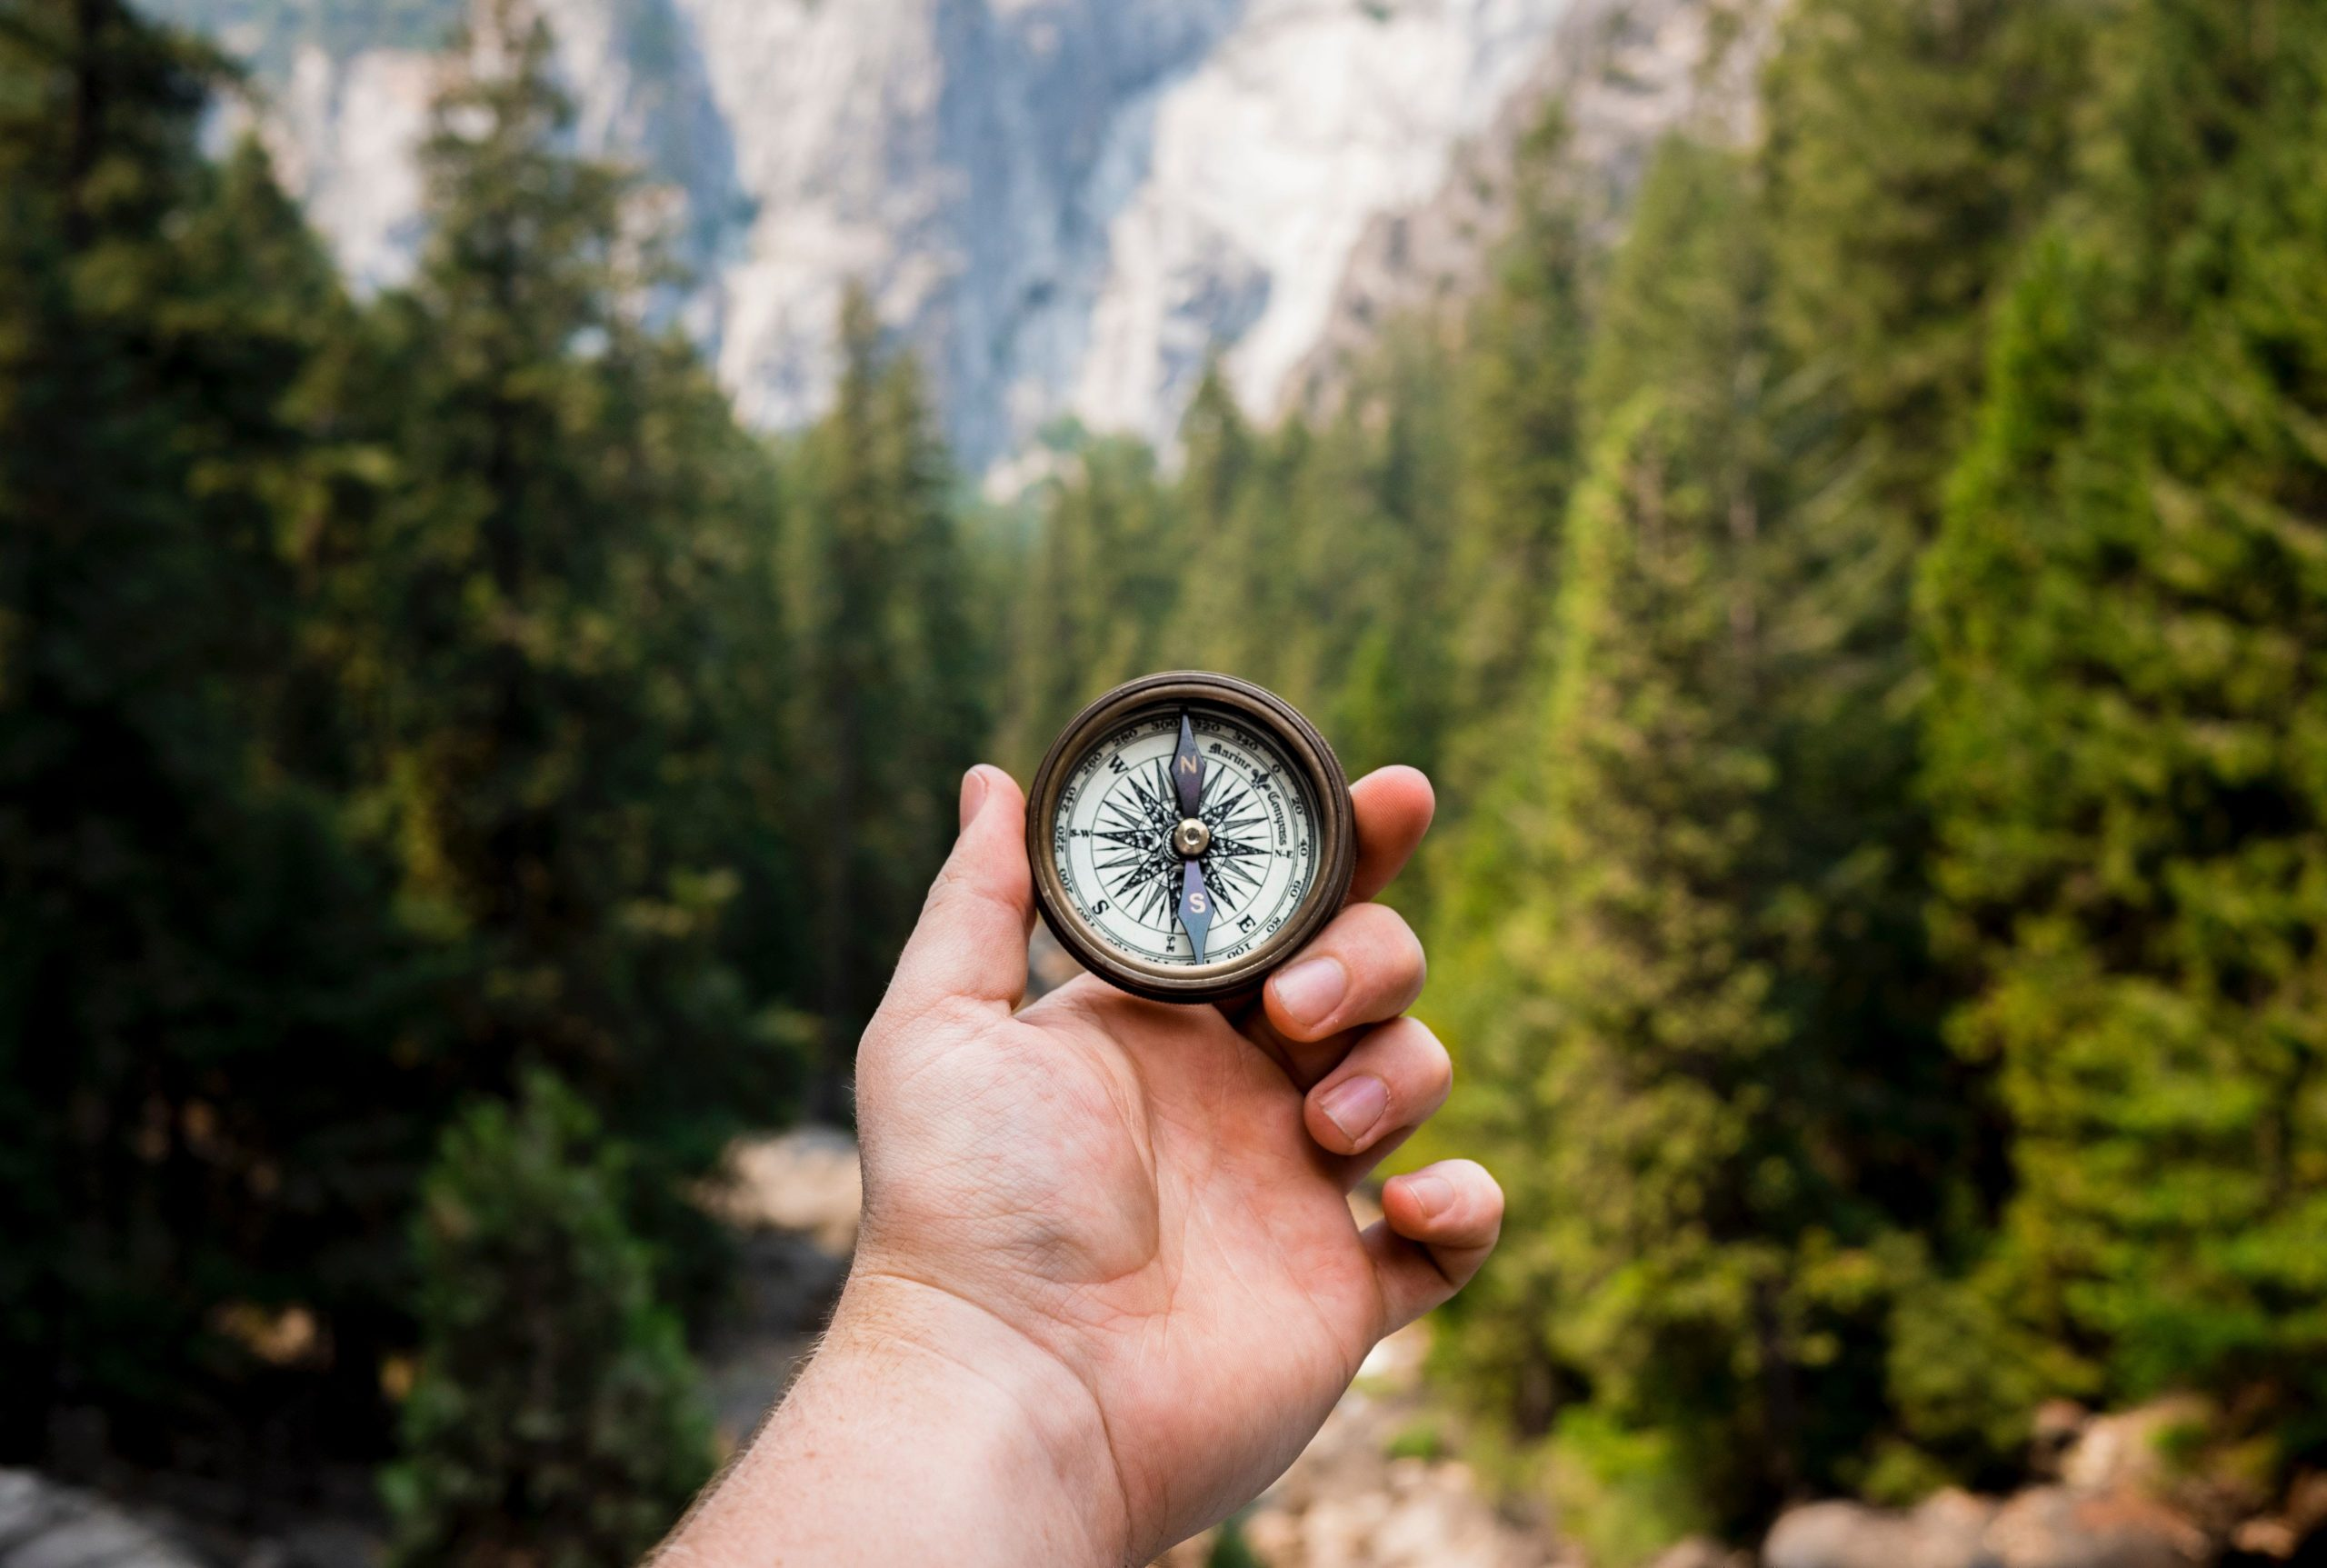 Hand holding compass in a forest